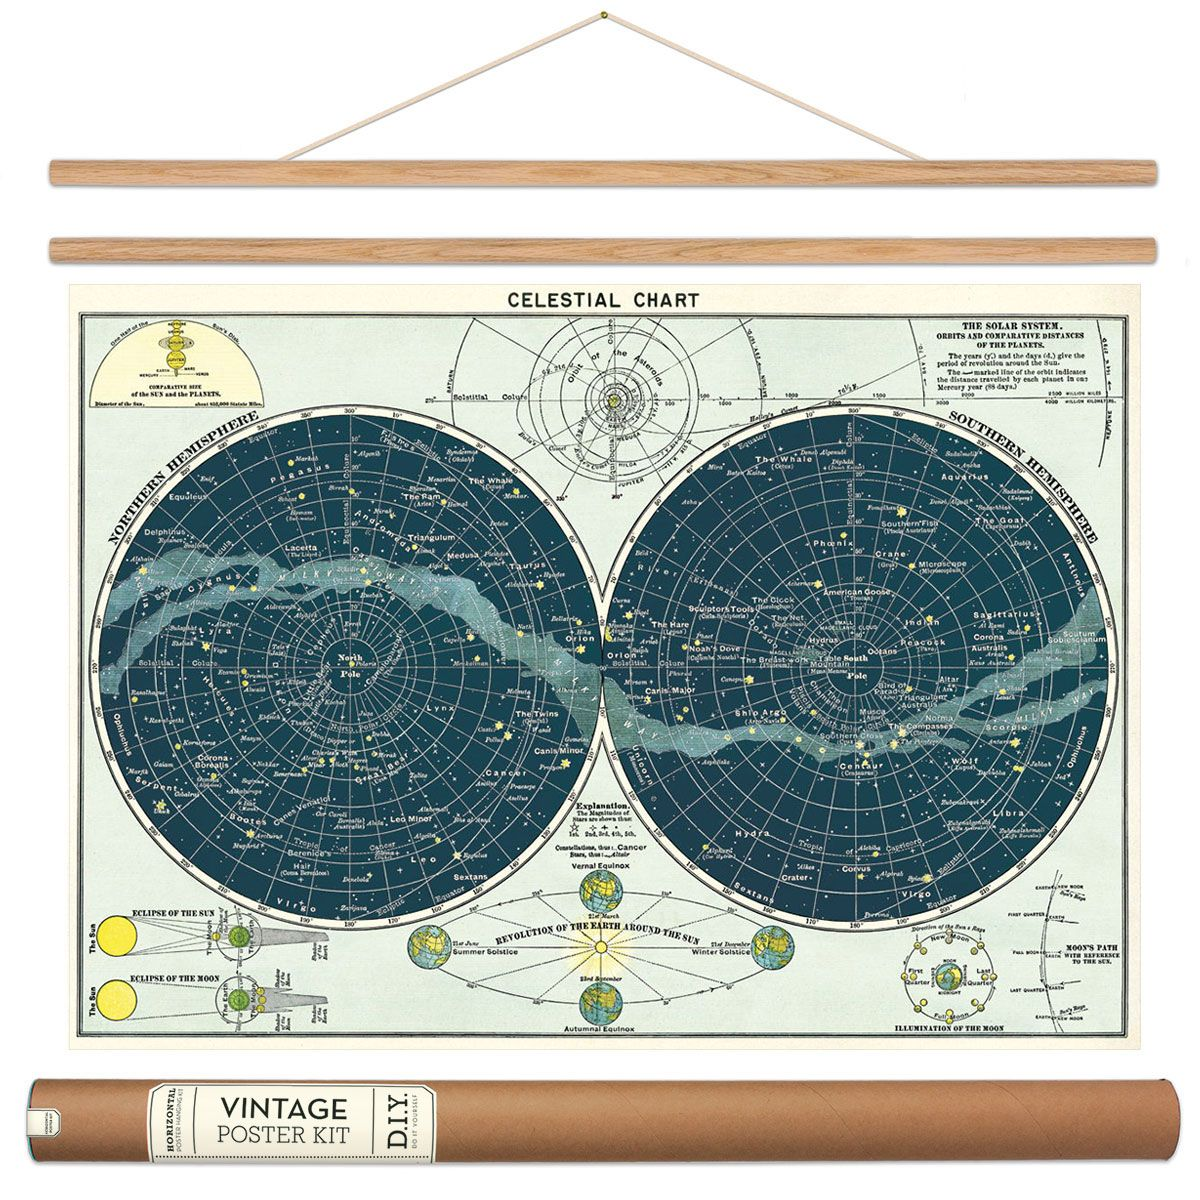 Celestial chart poster hanger kit constellations decorating buy the vintage cavallini diy poster kit from utility today nvjuhfo Gallery